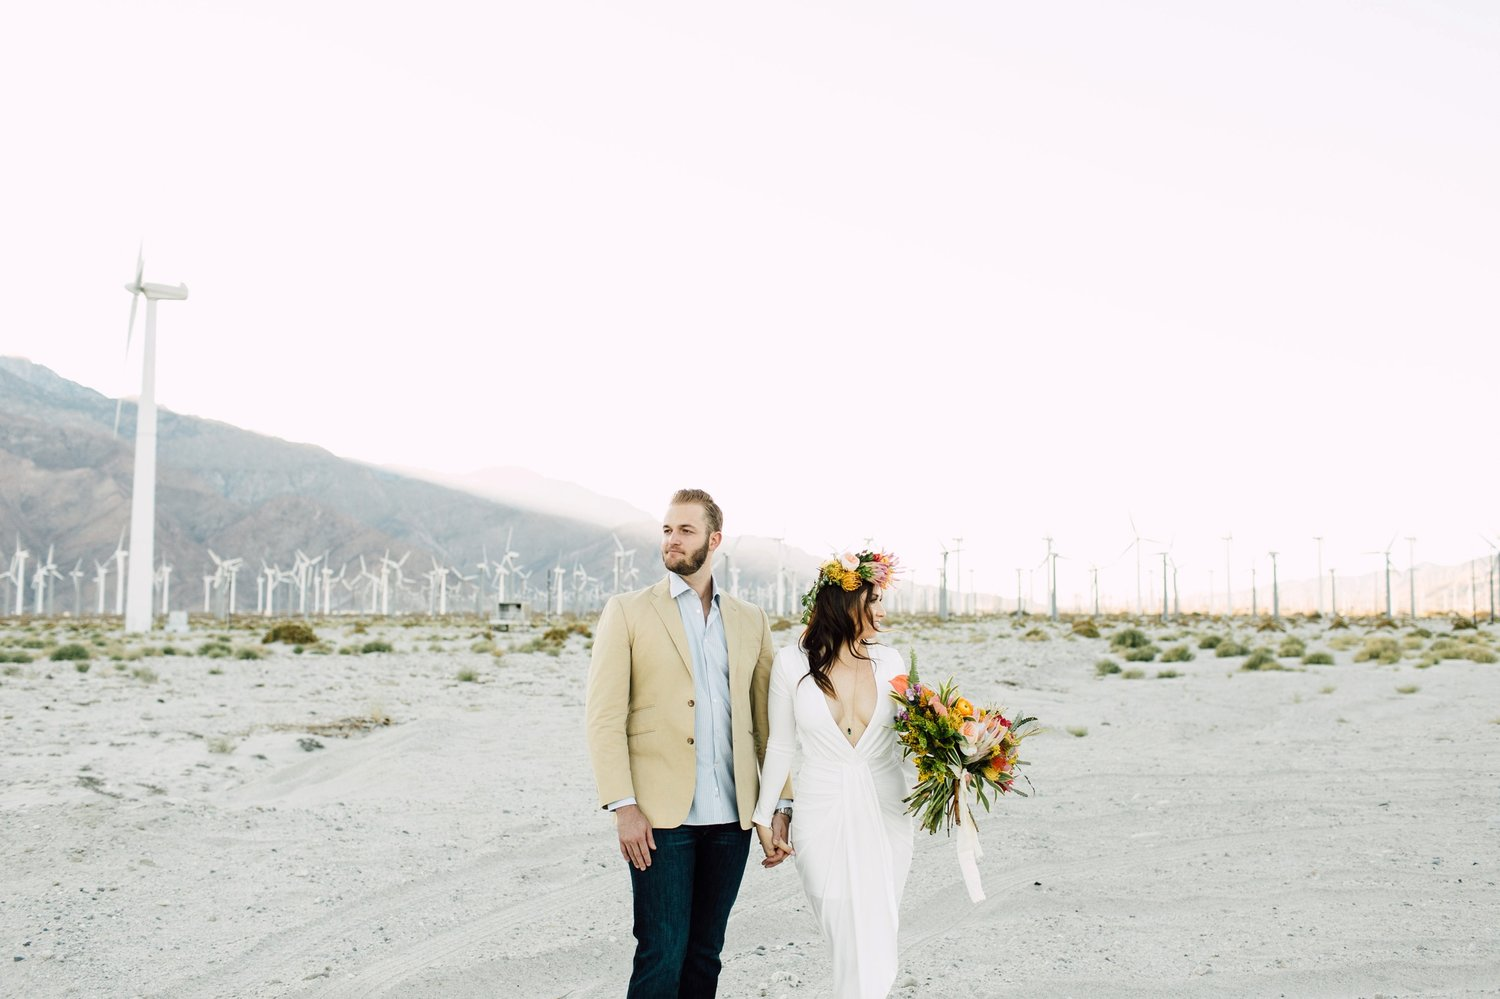 836e7c6ce659 Alexa-Rae + Nathan s Palm Springs Engagement- Featured on Junebug!